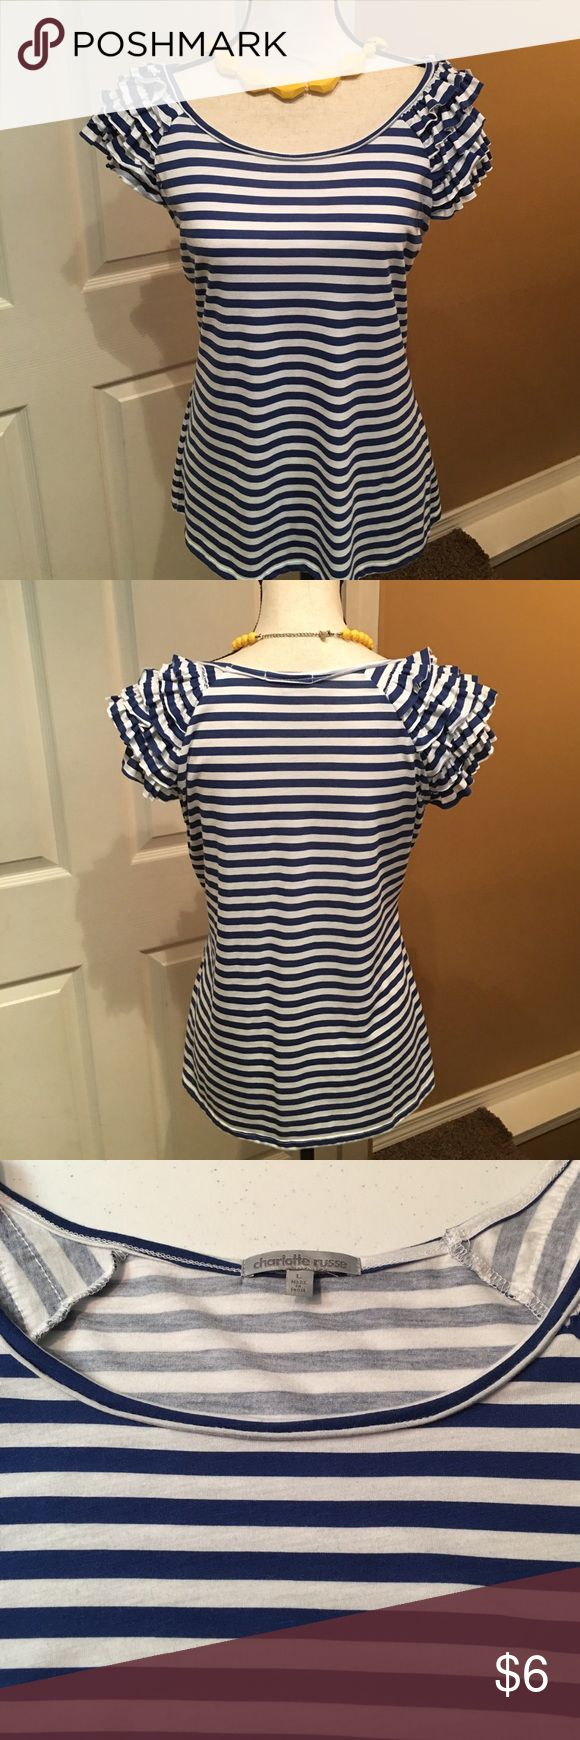 Blue and White Striped Tee with Ruffle Sleeves Cute blue and white tee perfect for Summer!  Gently worn, very good condition! (Necklace not included.) Charlotte Russe Tops Tees - Short Sleeve